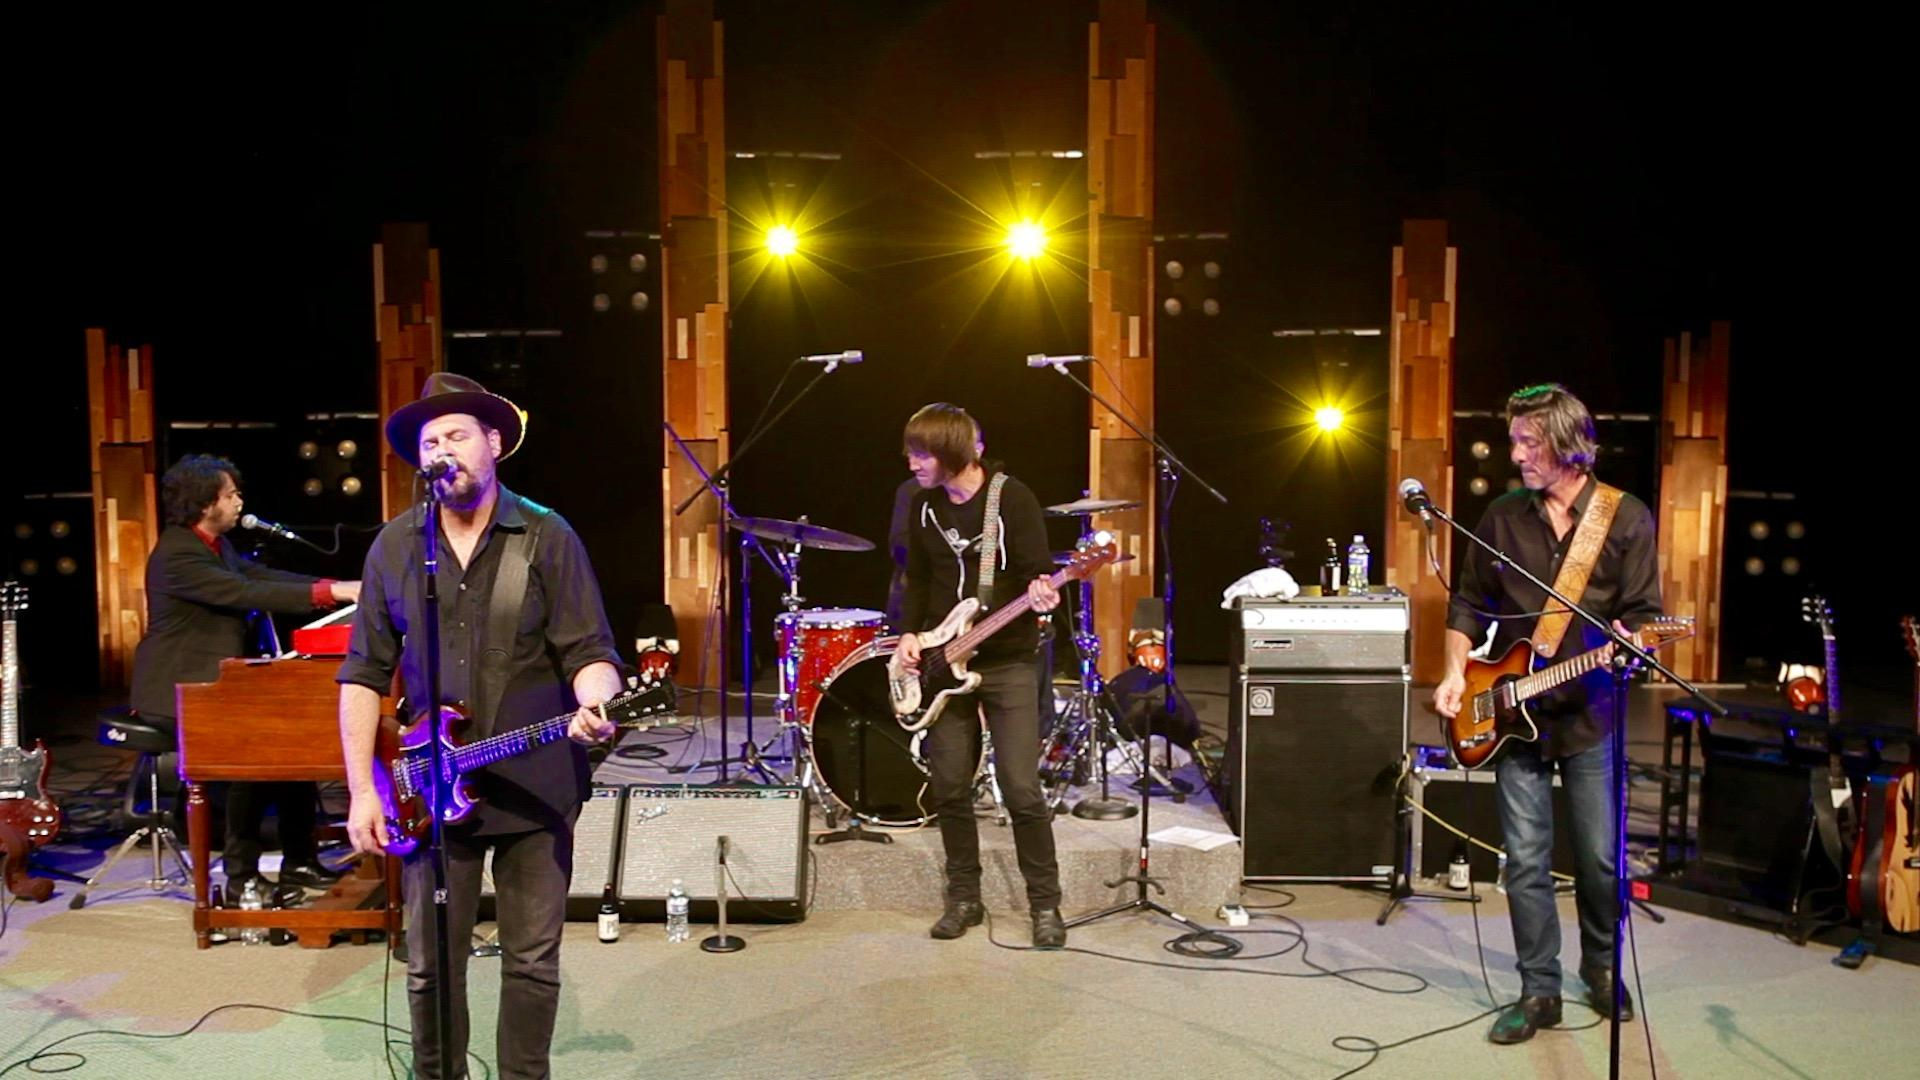 Drive-By Truckers performing live at OPB in Portland, OR.